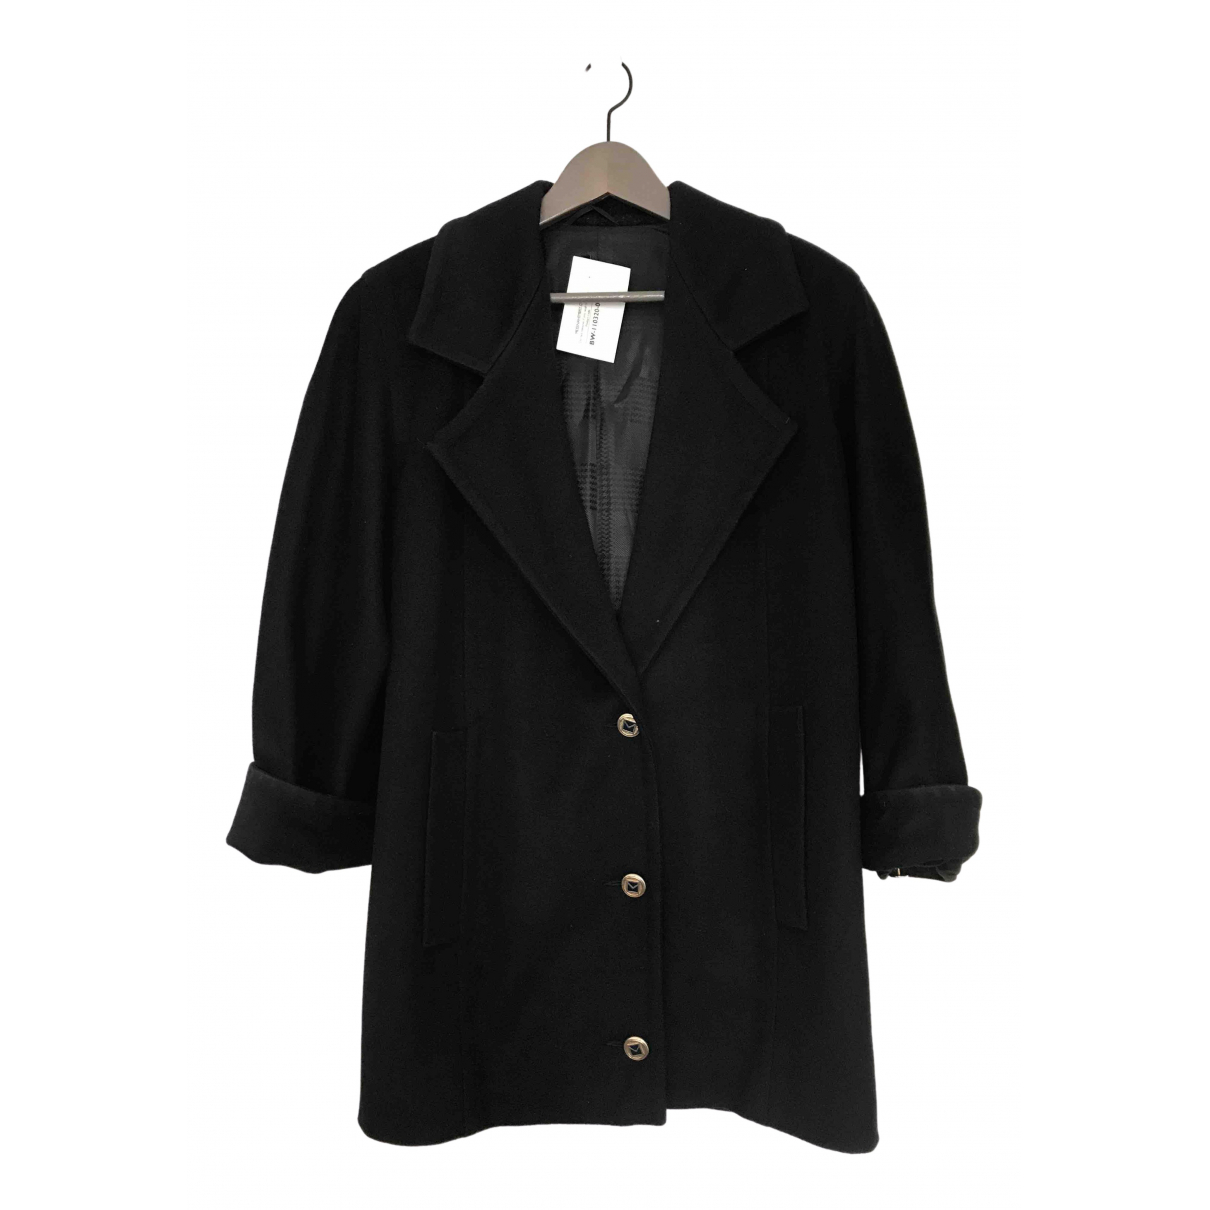 Max Mara N Black Wool coat for Women 38 IT